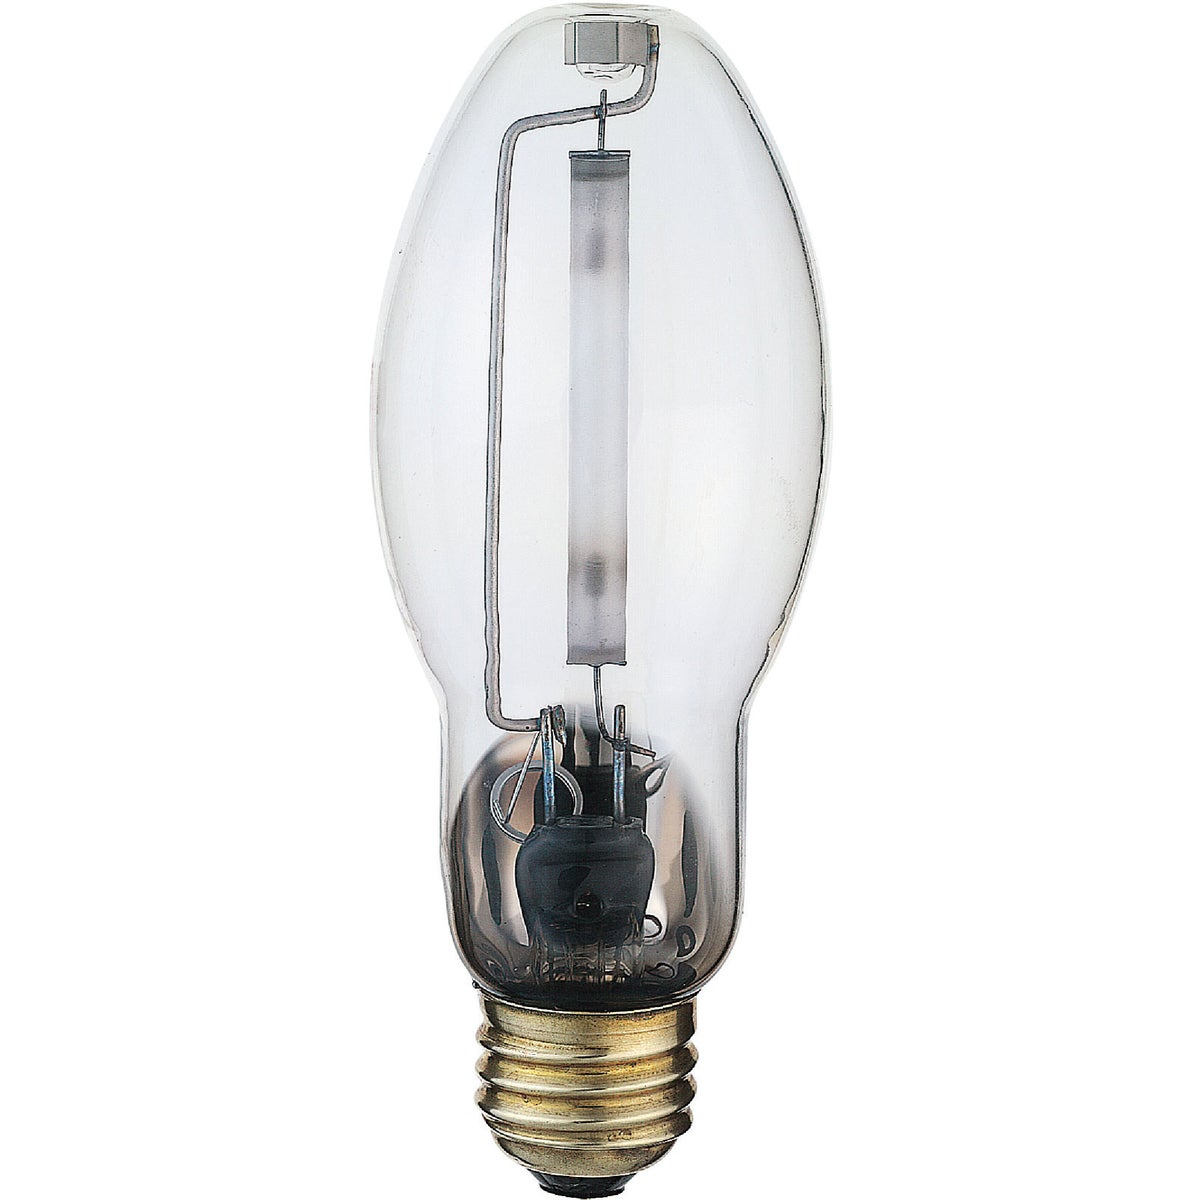 50W HP SODIUM BULB - 26421 LU50/MED/CP by G E Lighting Incom